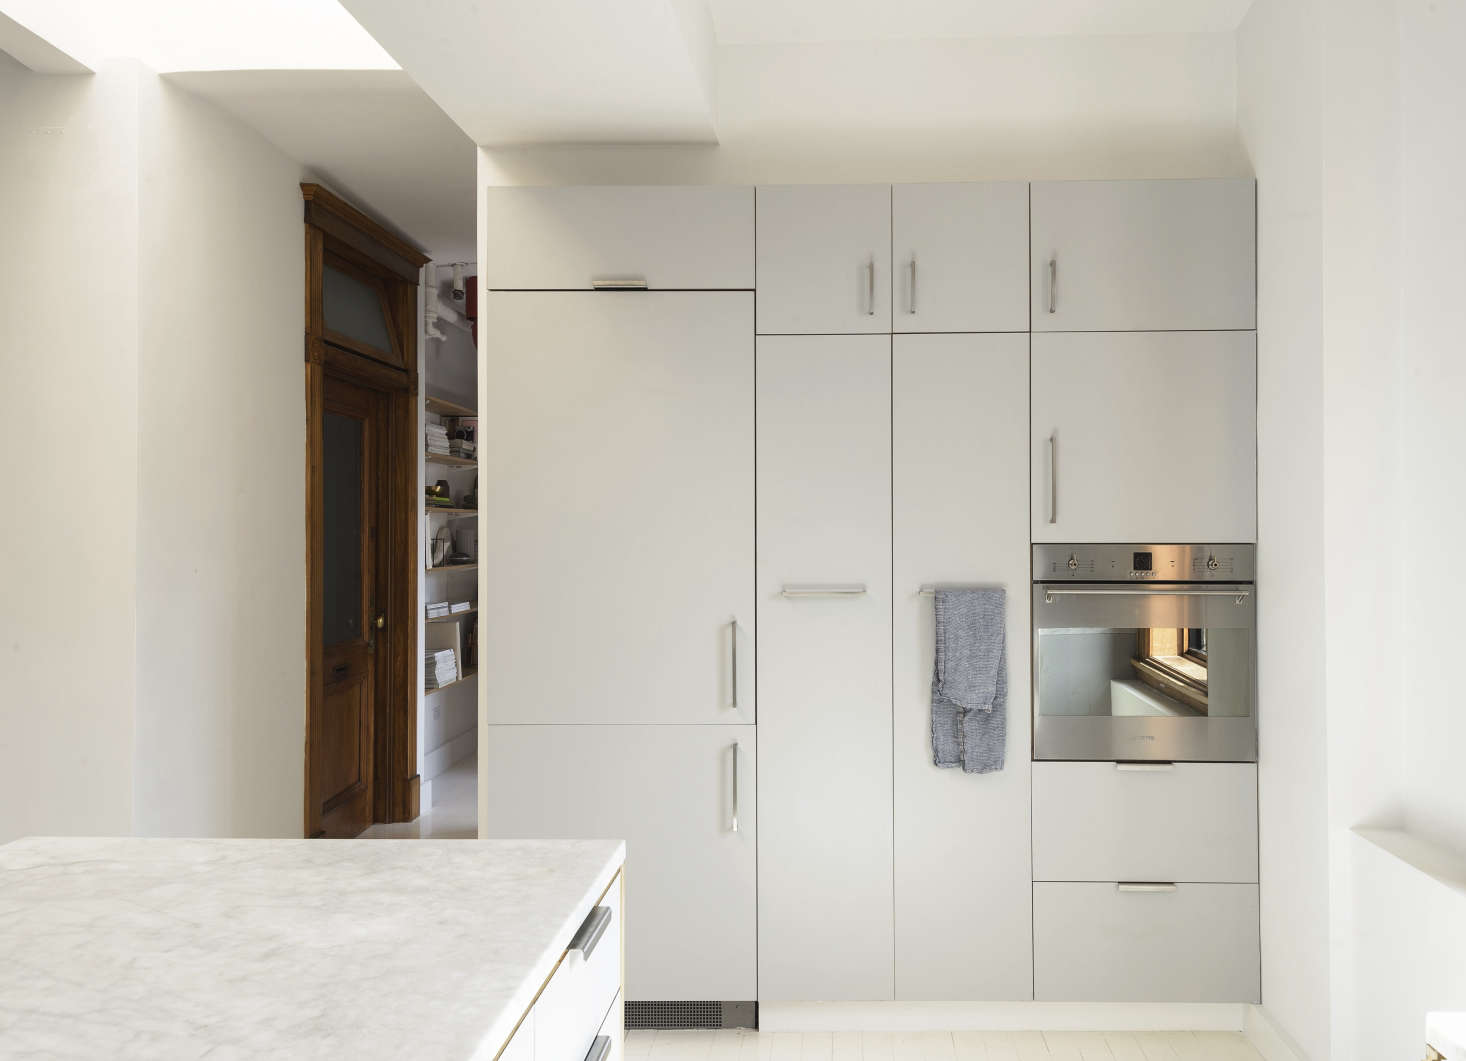 The fridge is concealed on the cabinet wall, which incorporates a Smeg wall oven.